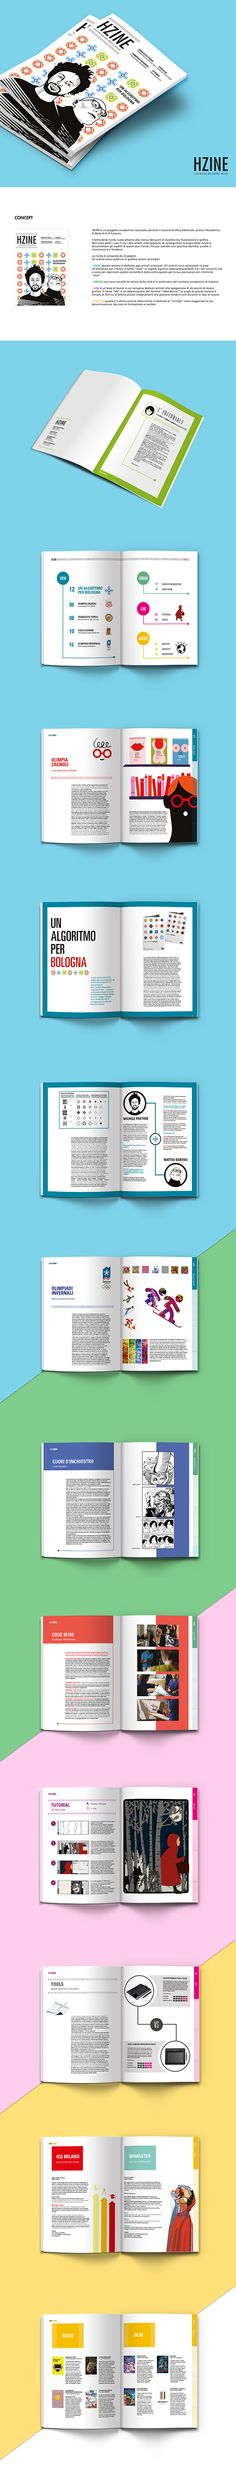 HZINE - magazine - Illustration and Graphic design on Behance